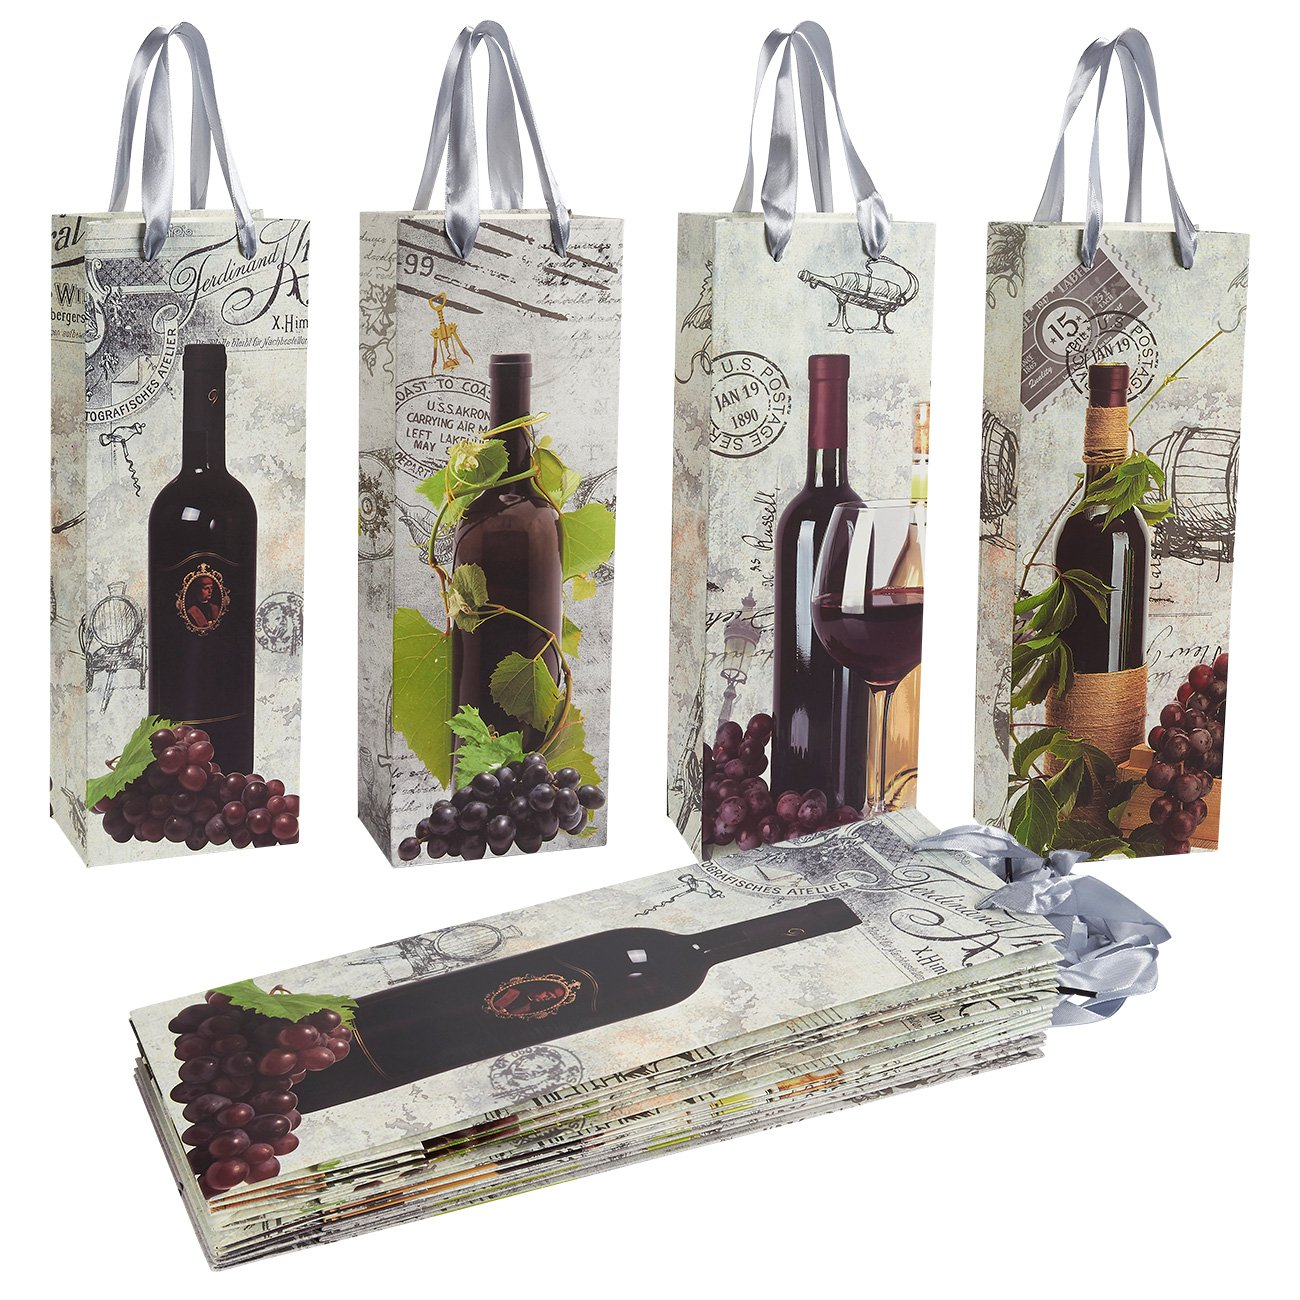 12-Pack Premium Wine Gift Bags, Bottle Carrying Picnic Tote, 4 Designs 36 x 13 x 7 cm Juvale